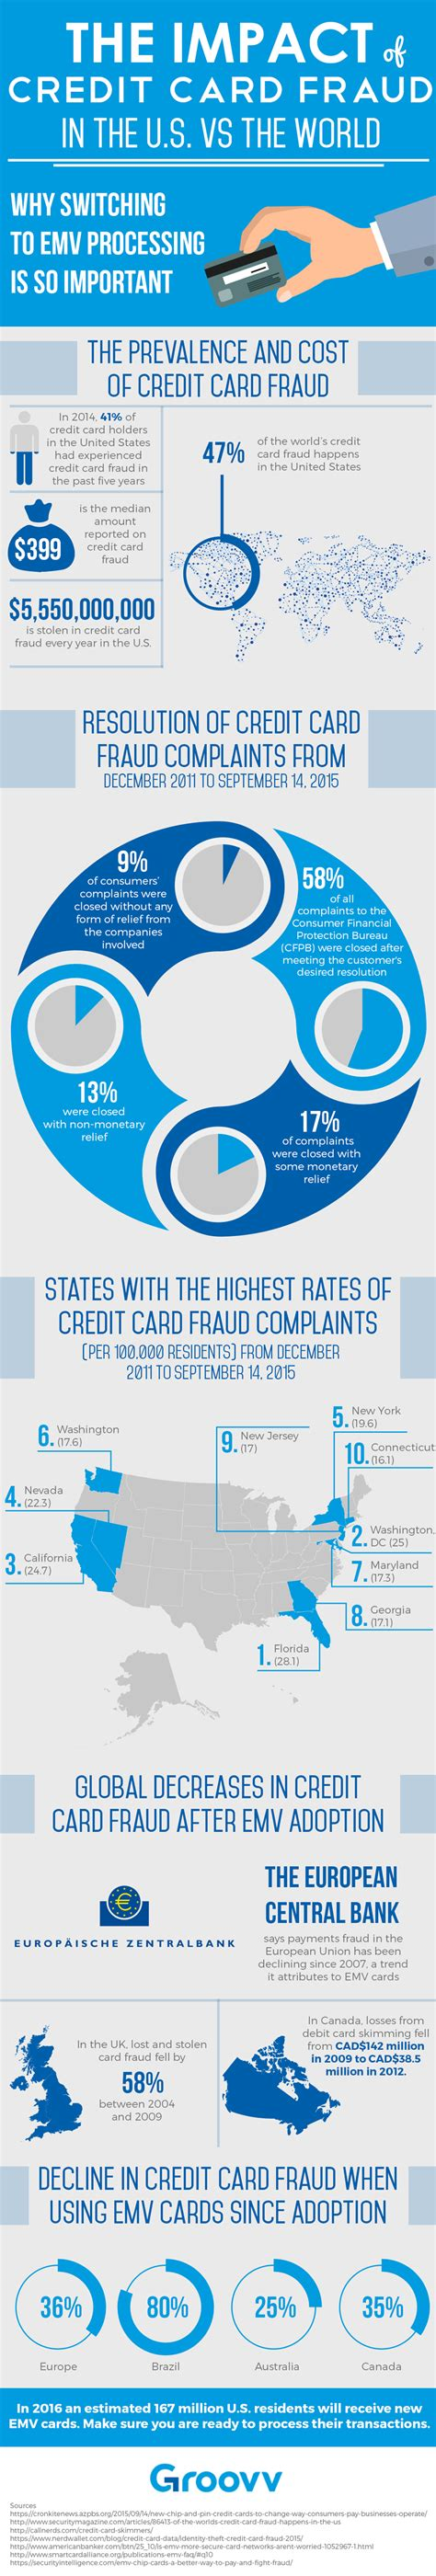 Maybe you would like to learn more about one of these? INFOGRAPHIC: Impact Of Credit Card Fraud In The U.S. VS The World | Transaction Services